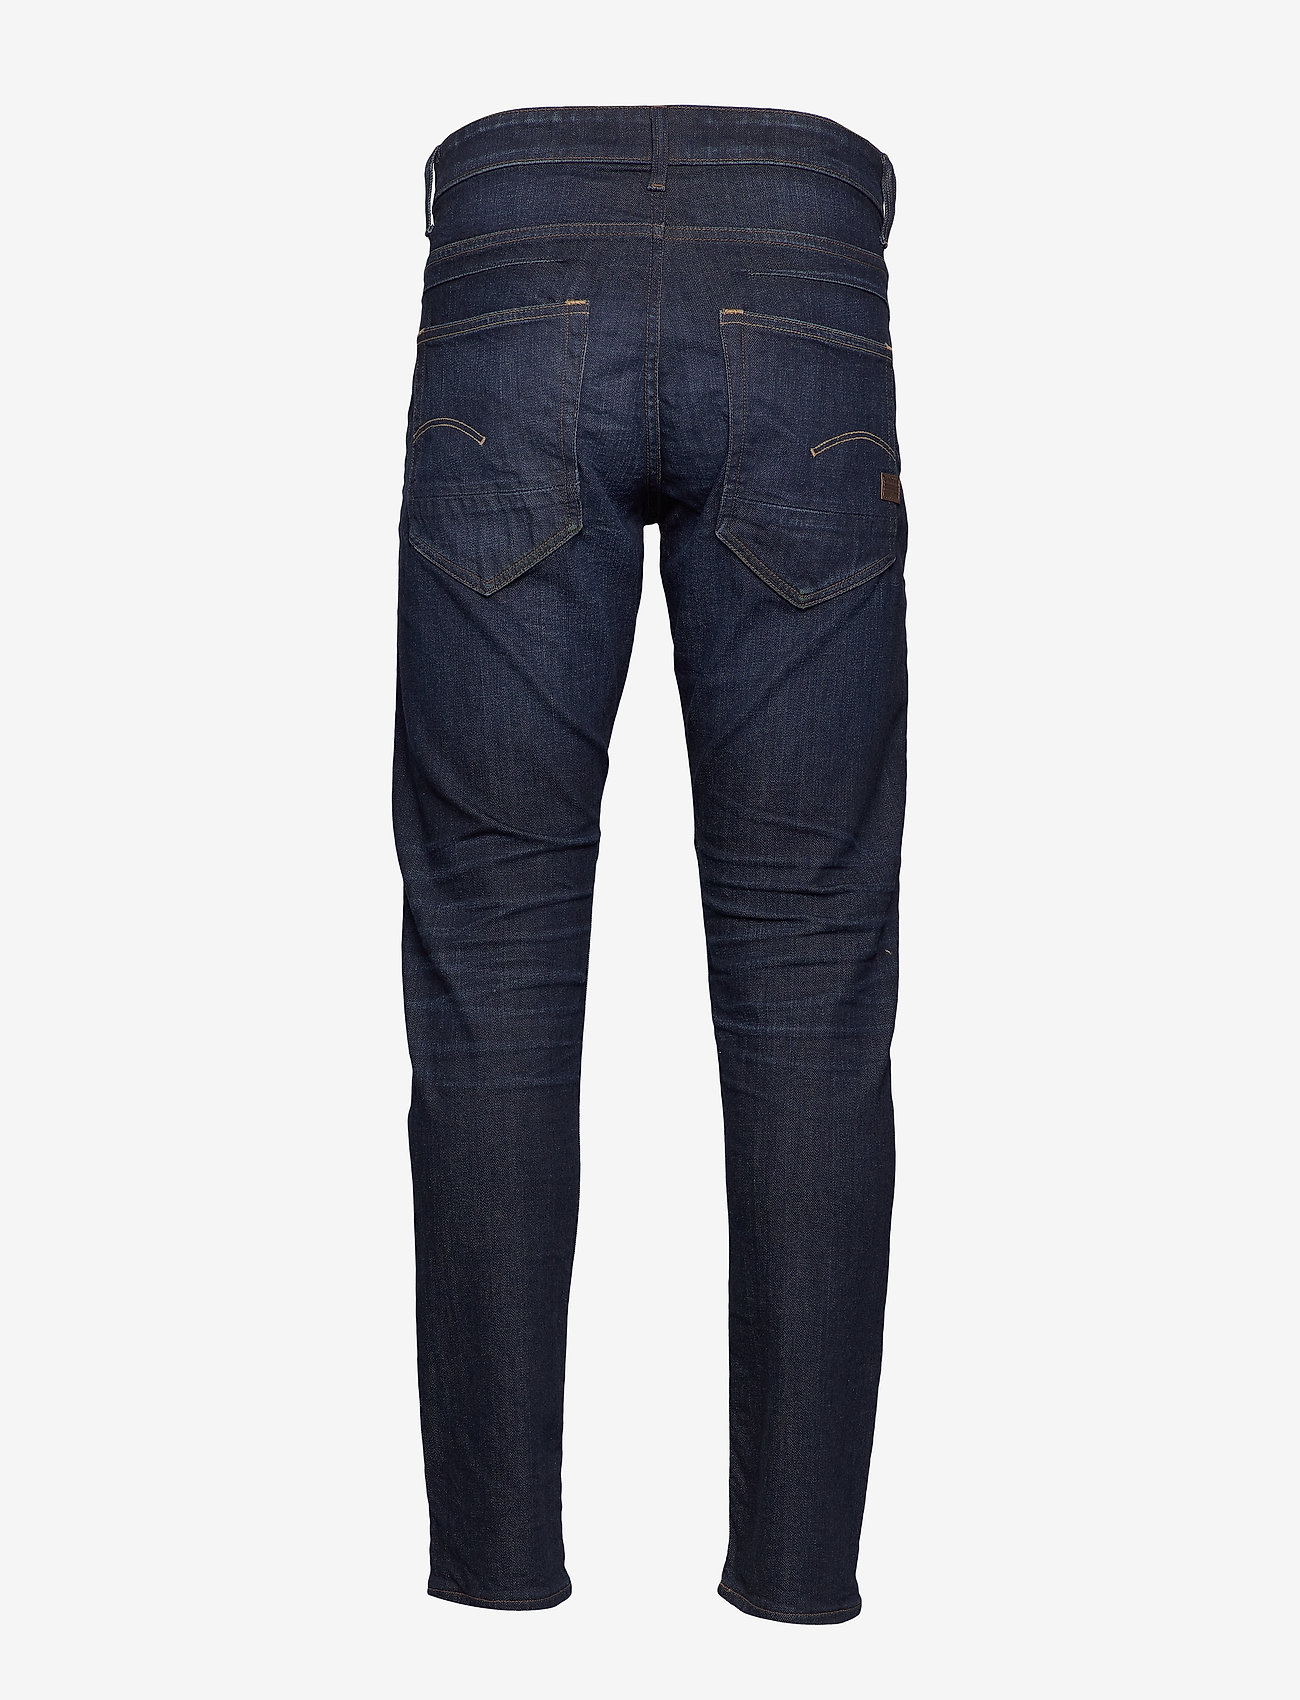 G-star RAW - D-Staq 5-pkt Slim C - slim jeans - worn in deep forest - 1